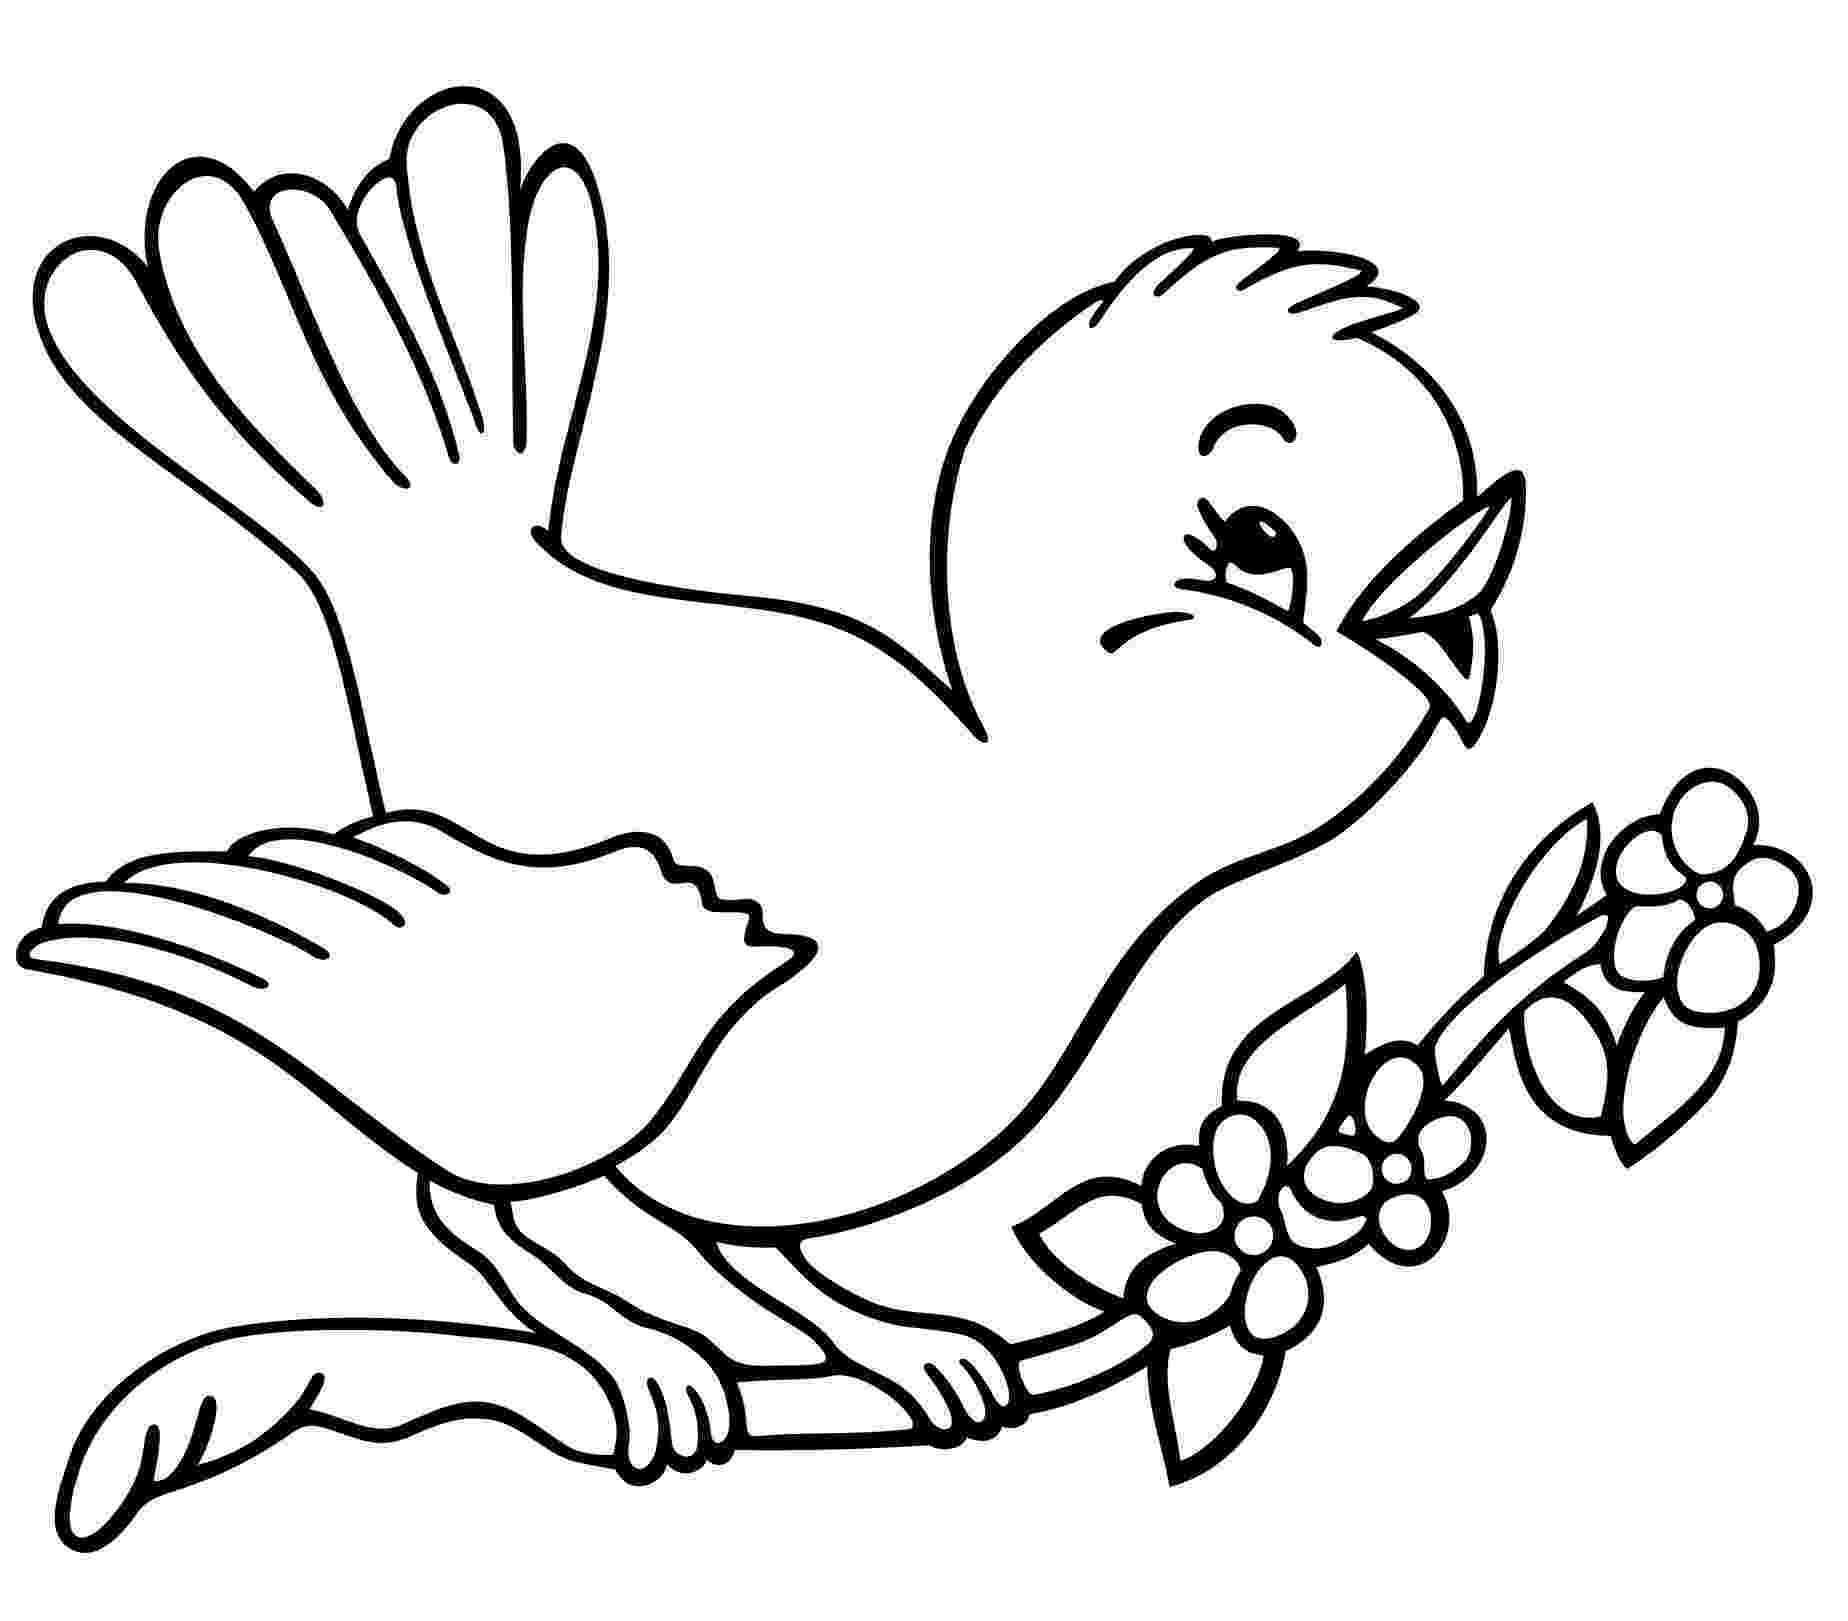 coloring book birds pictures bird group coloring pages hellokidscom coloring book birds pictures